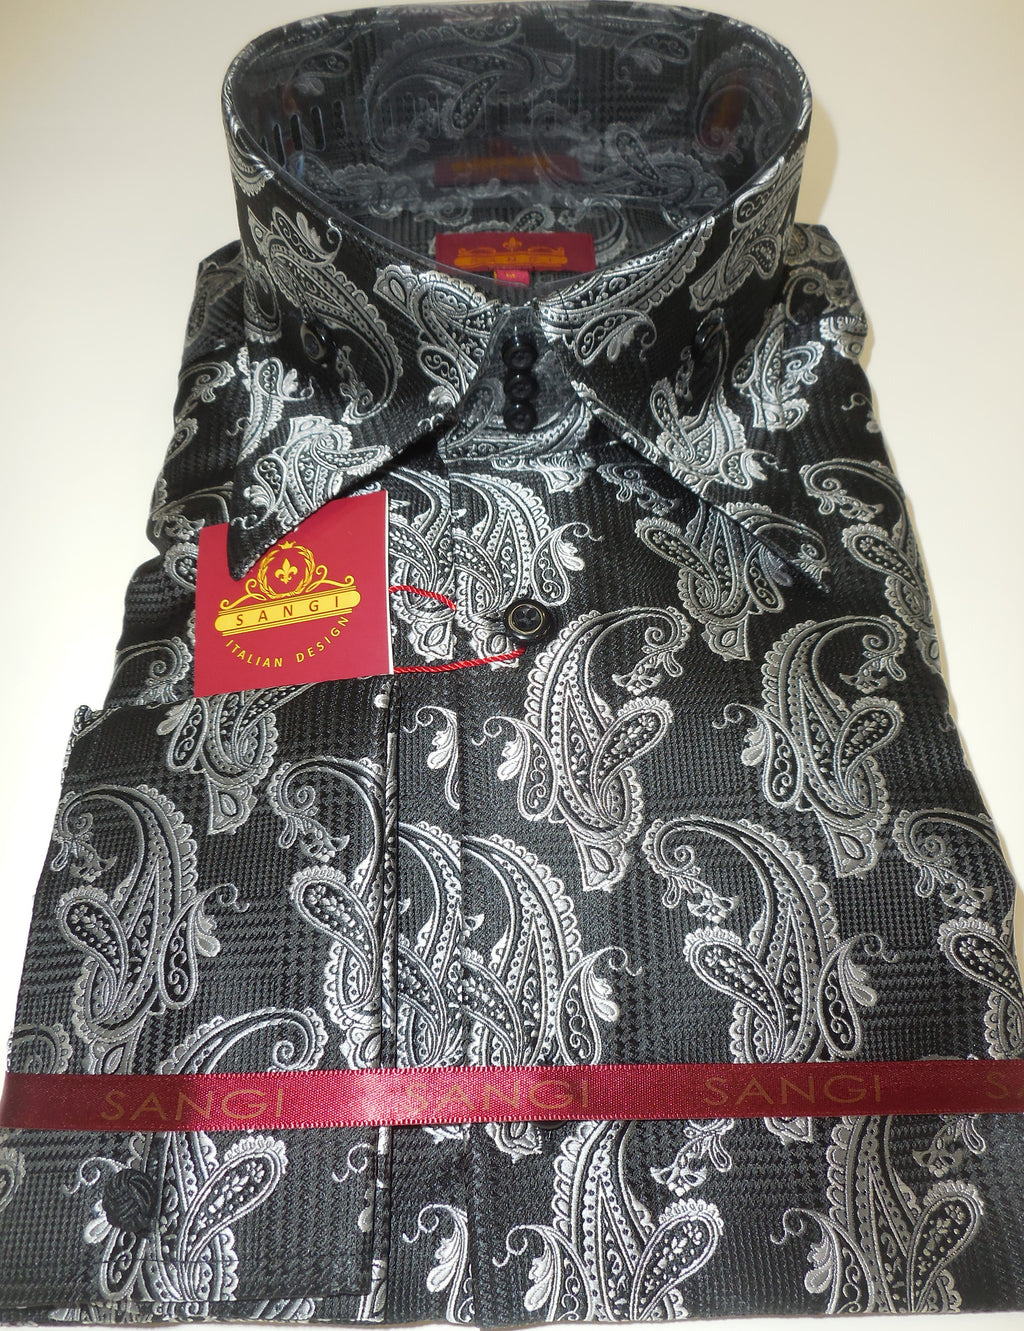 Mens Black White Houndstooth Paisley Jacquard Shirt SANGI ROME COLLECTION # 2002